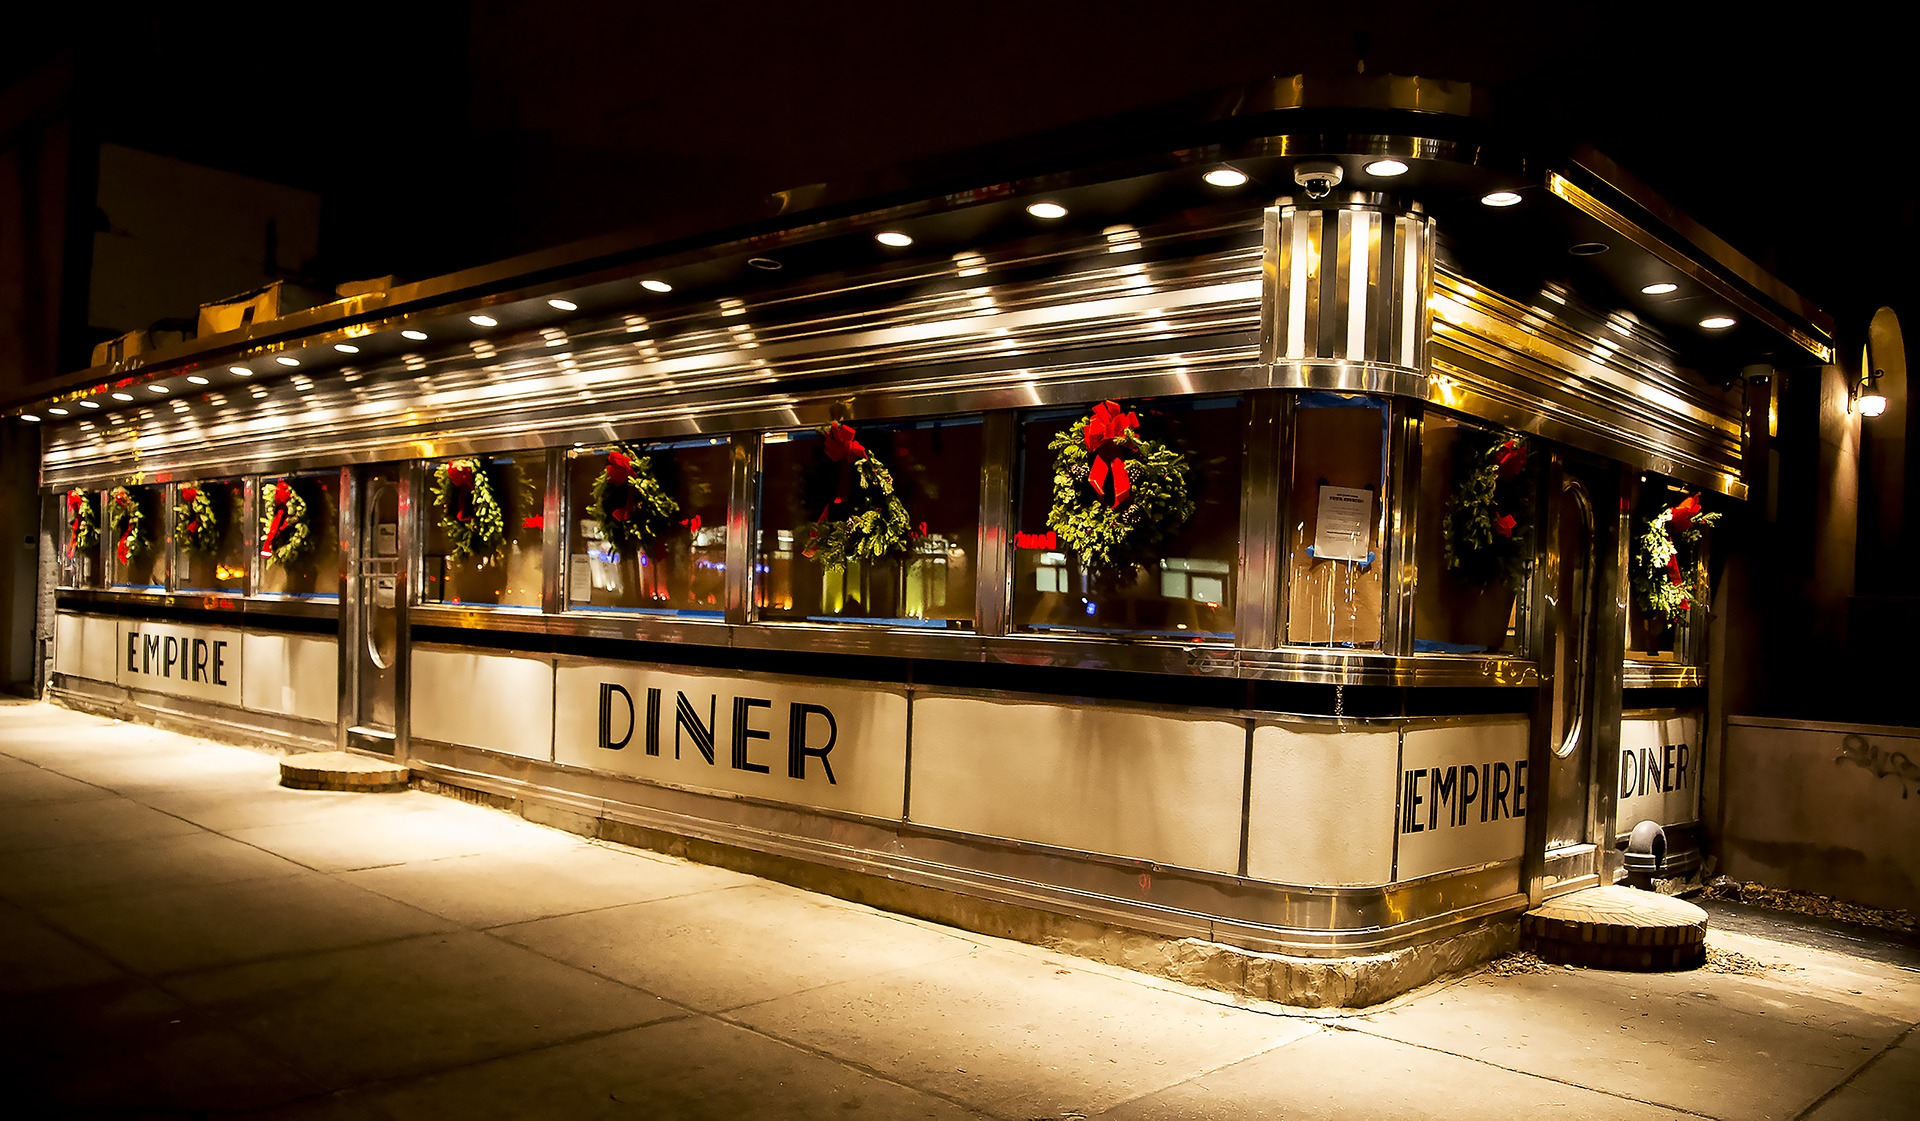 Diner decorated for Christmas